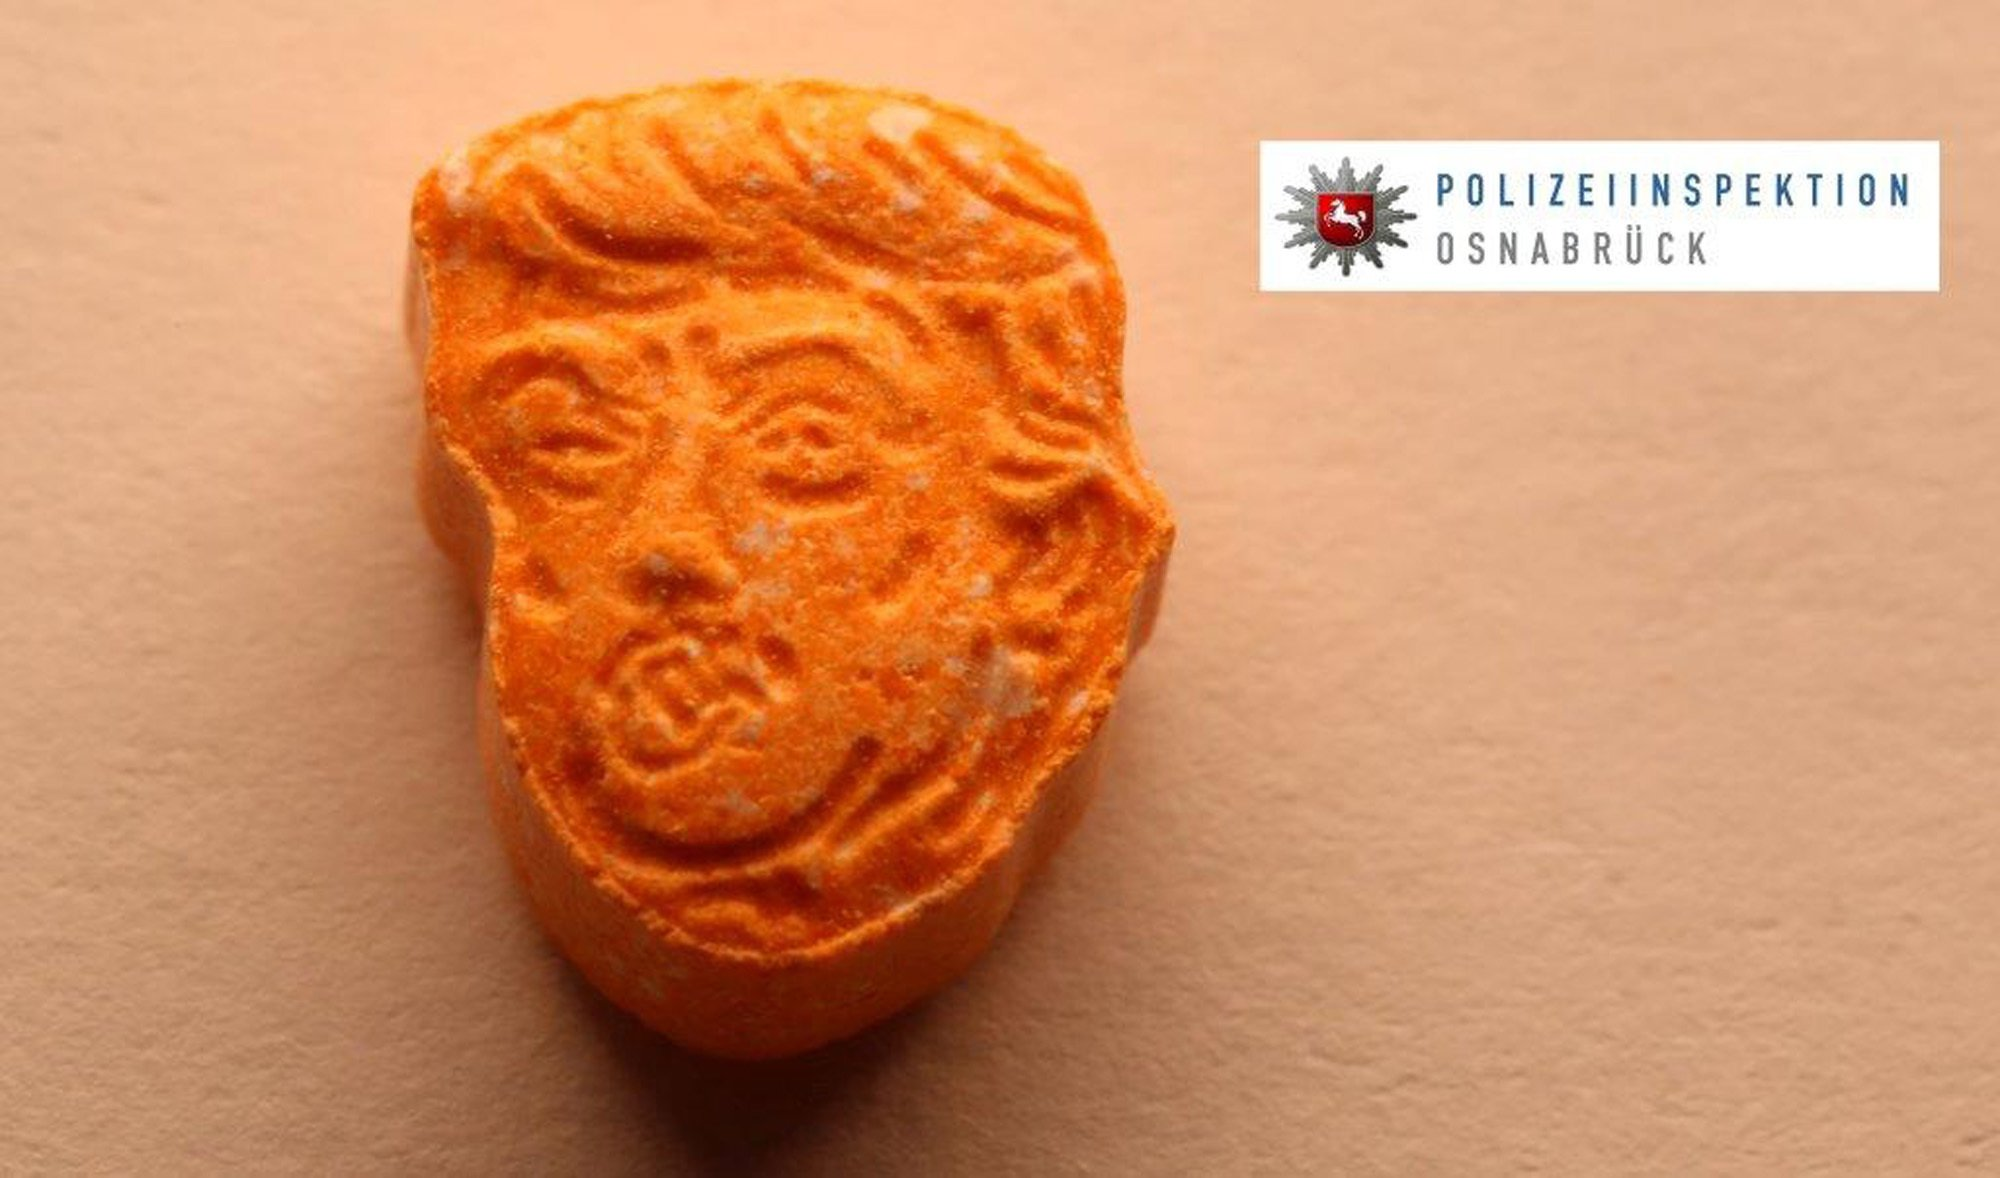 German police seize thousands of ecstasy tablets in the shape of Pres. Donald Trump's head https://t.co/zAmyGqlaBN https://t.co/3nutRoRO8B